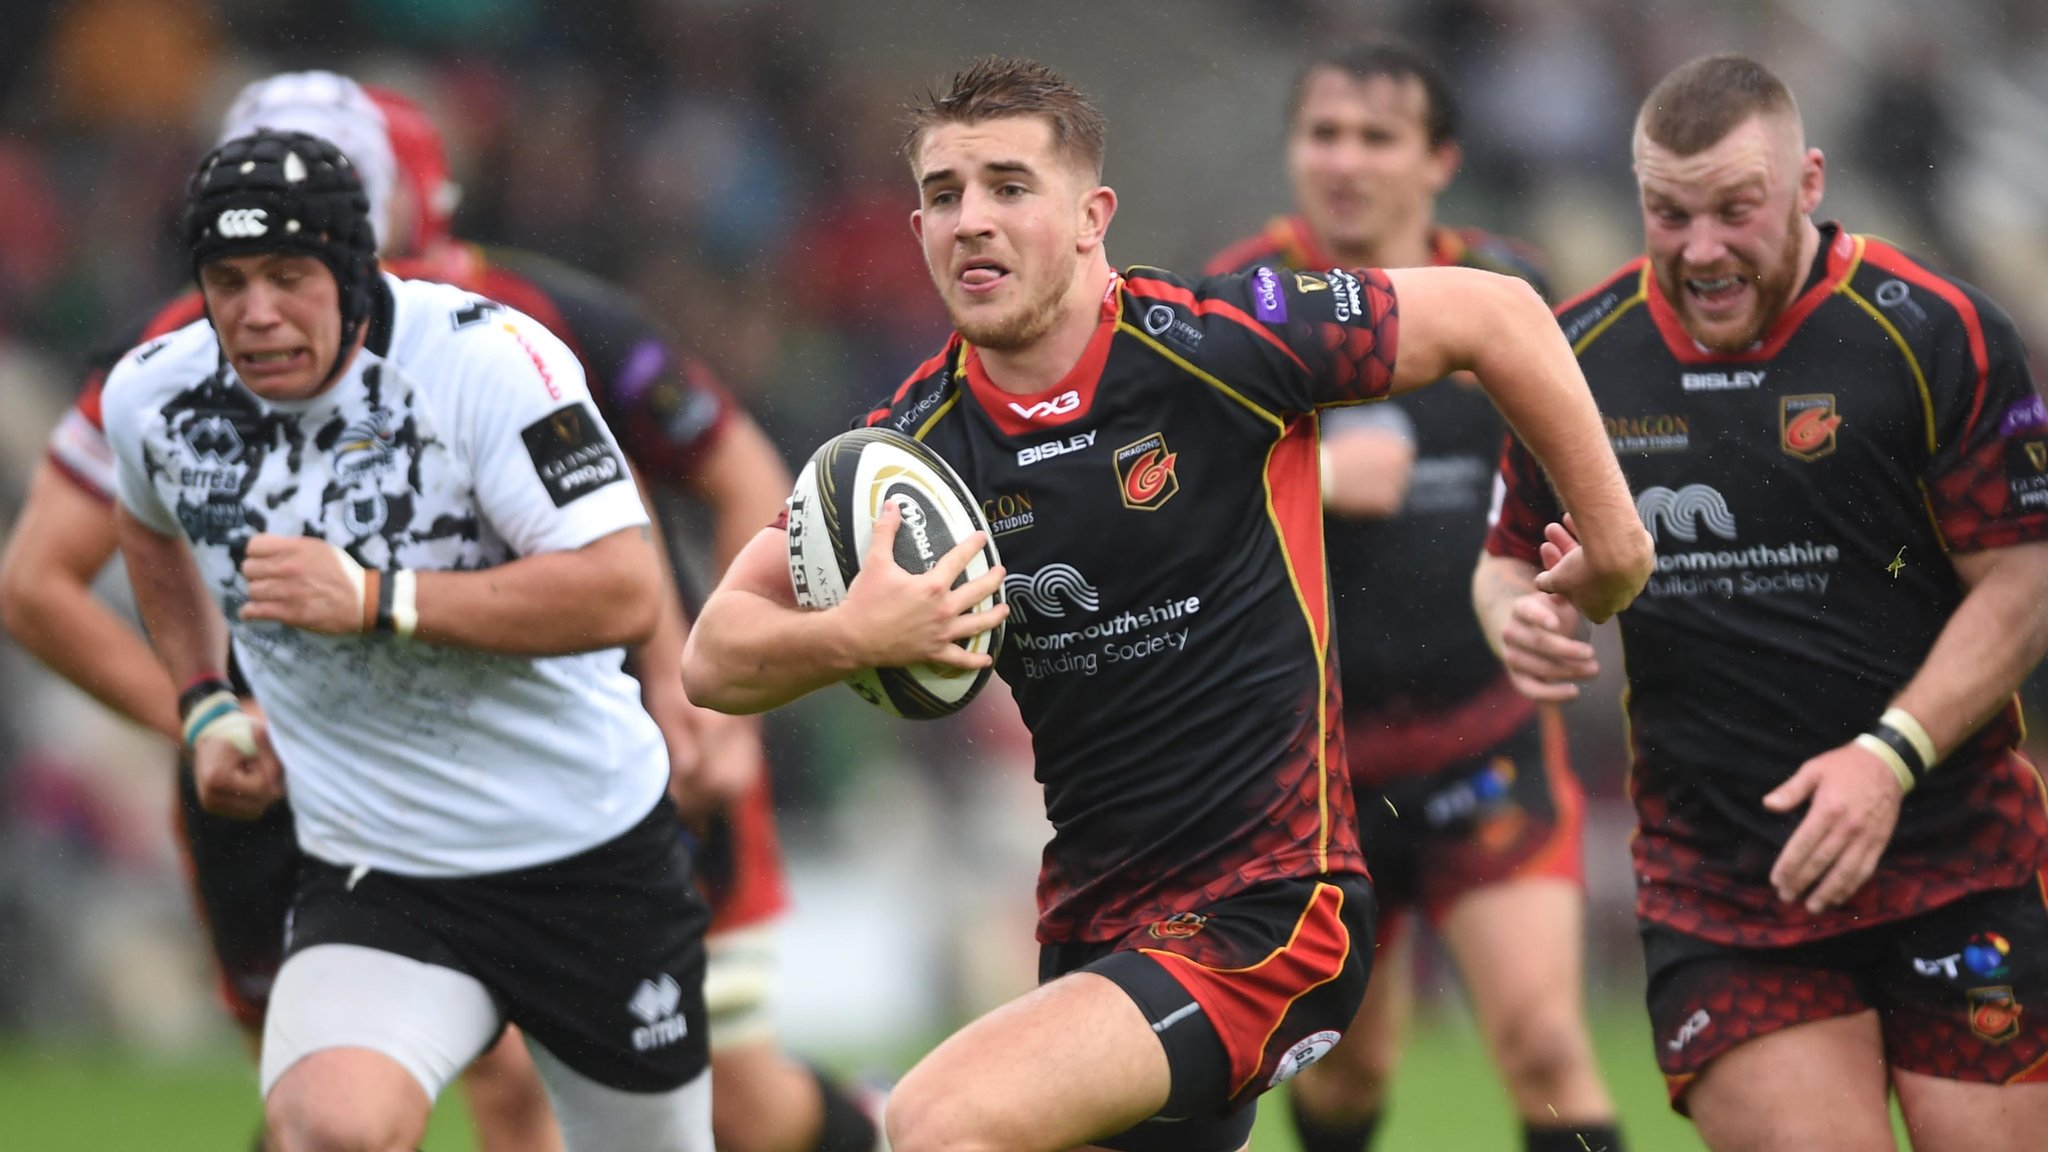 Robson & Howells tries help Dragons beat Zebre